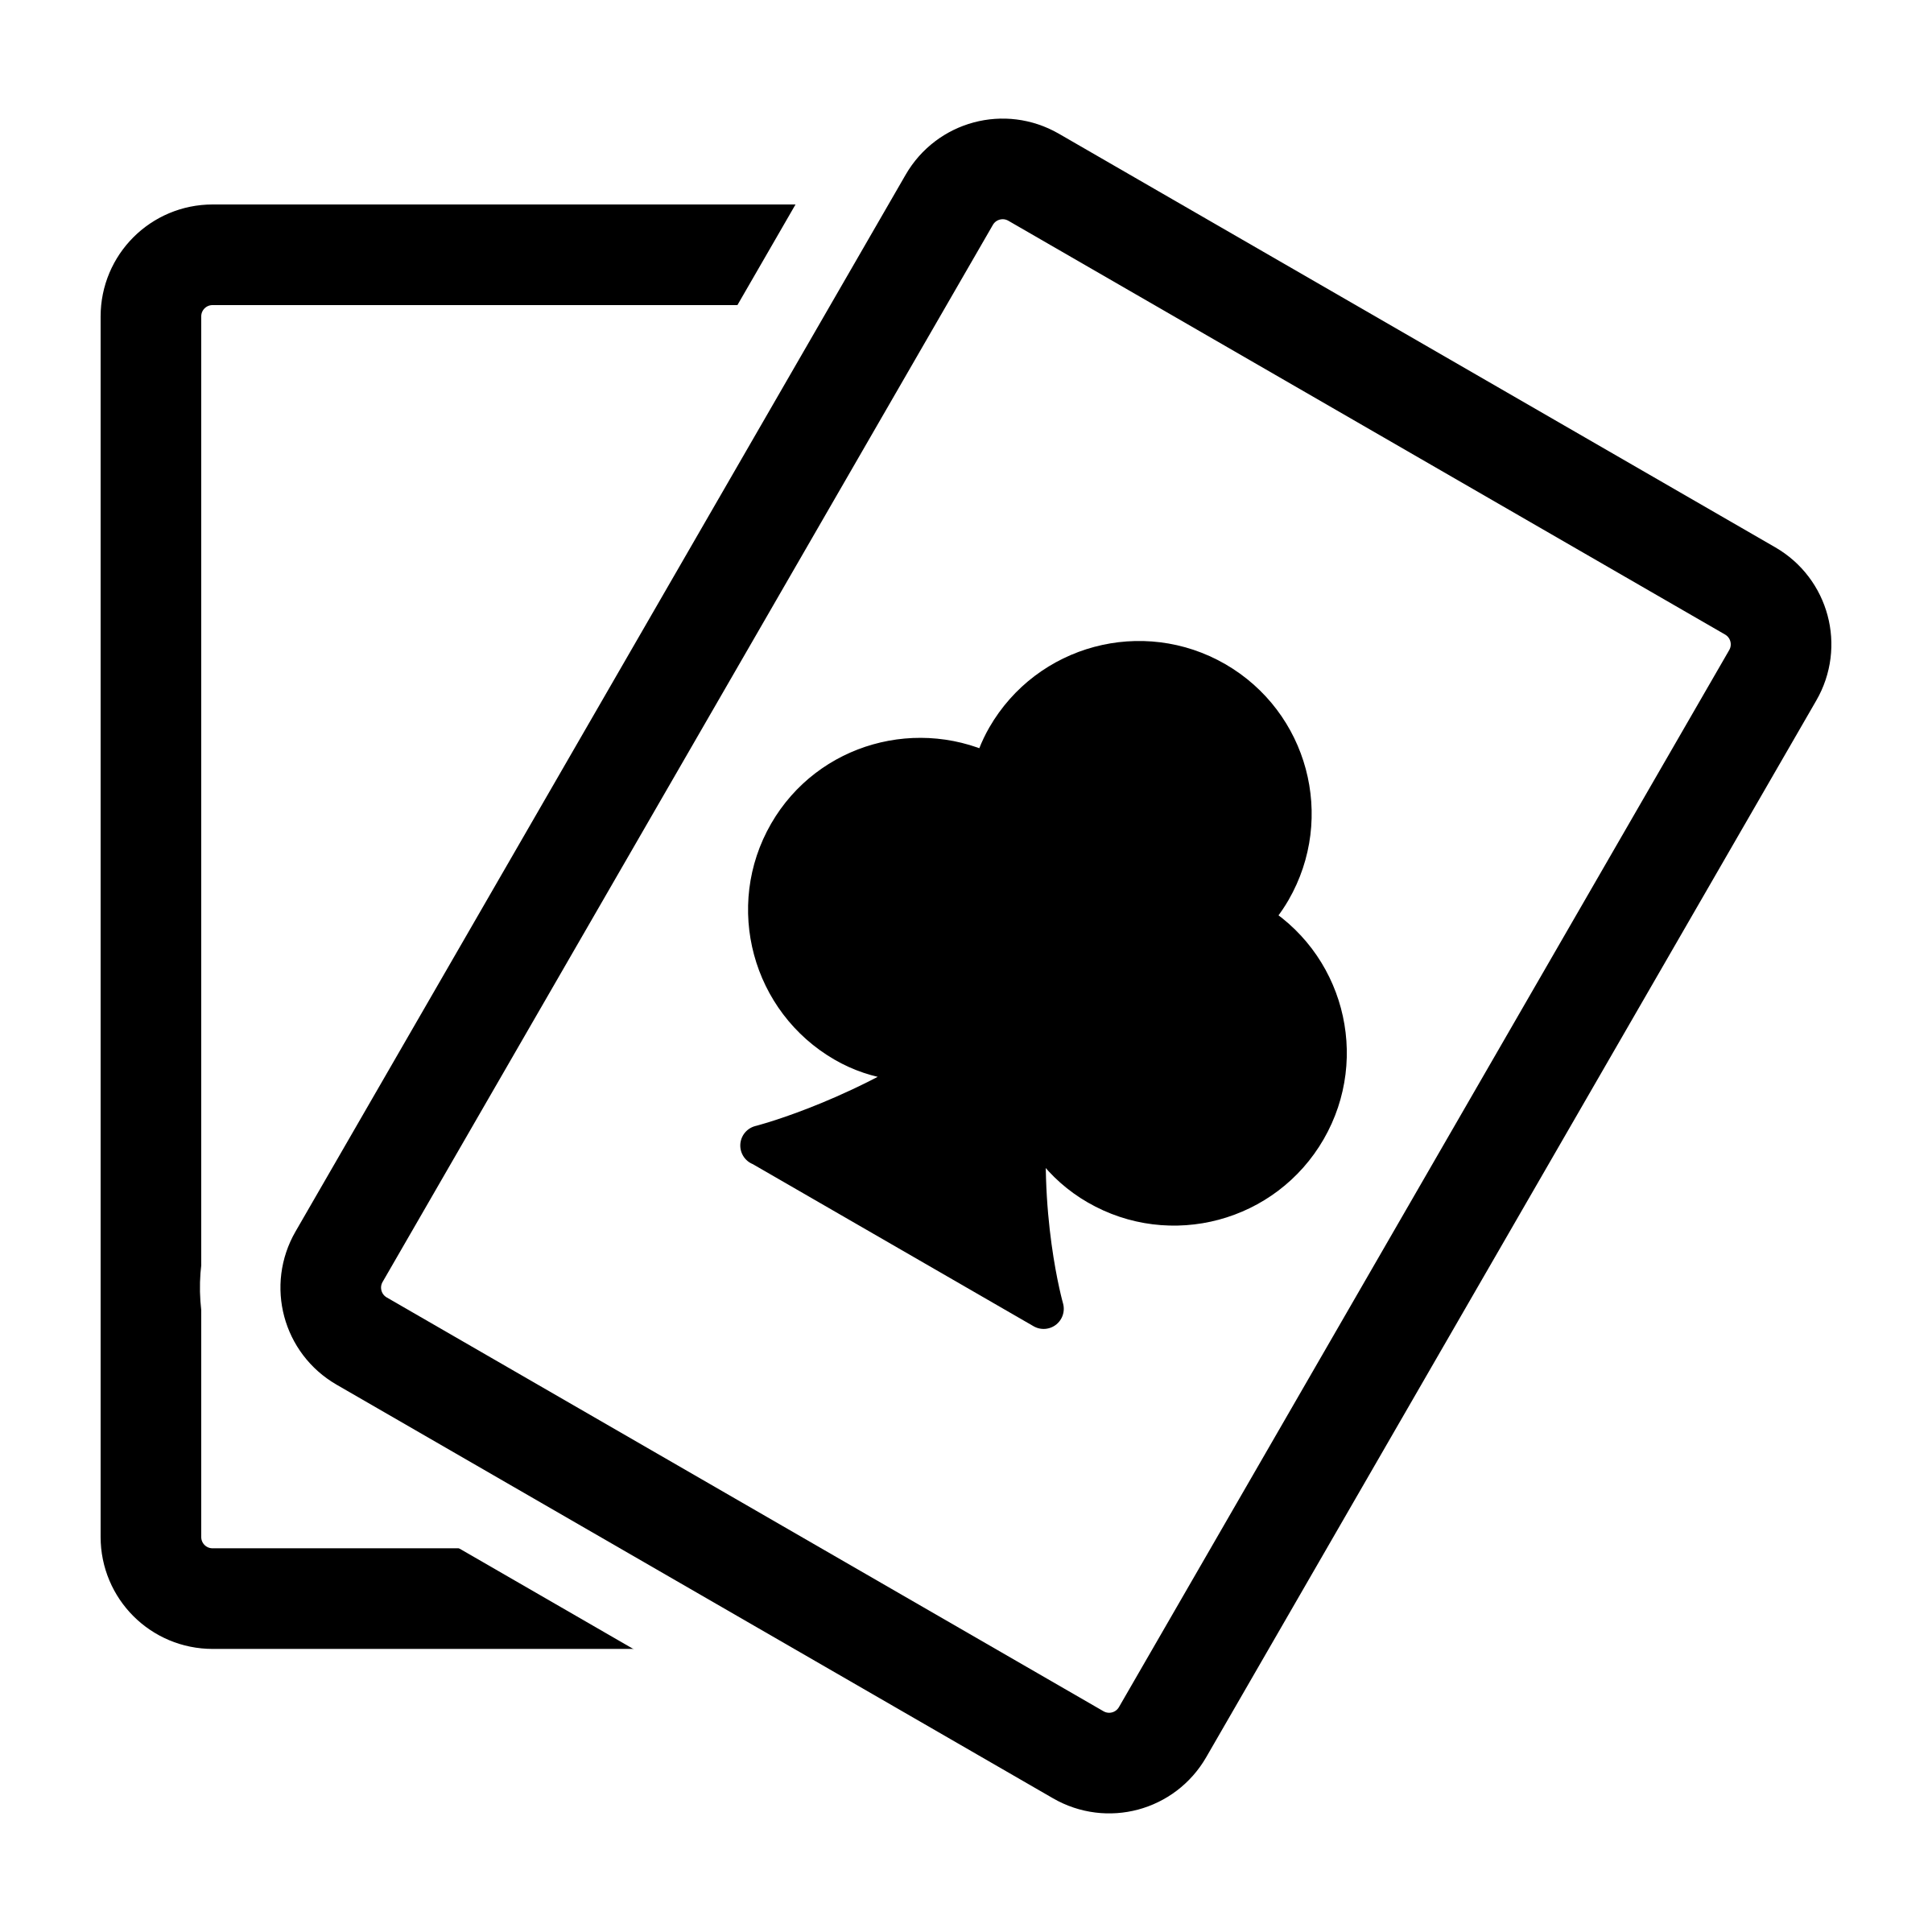 Games clipart black and white. Poker cards big image